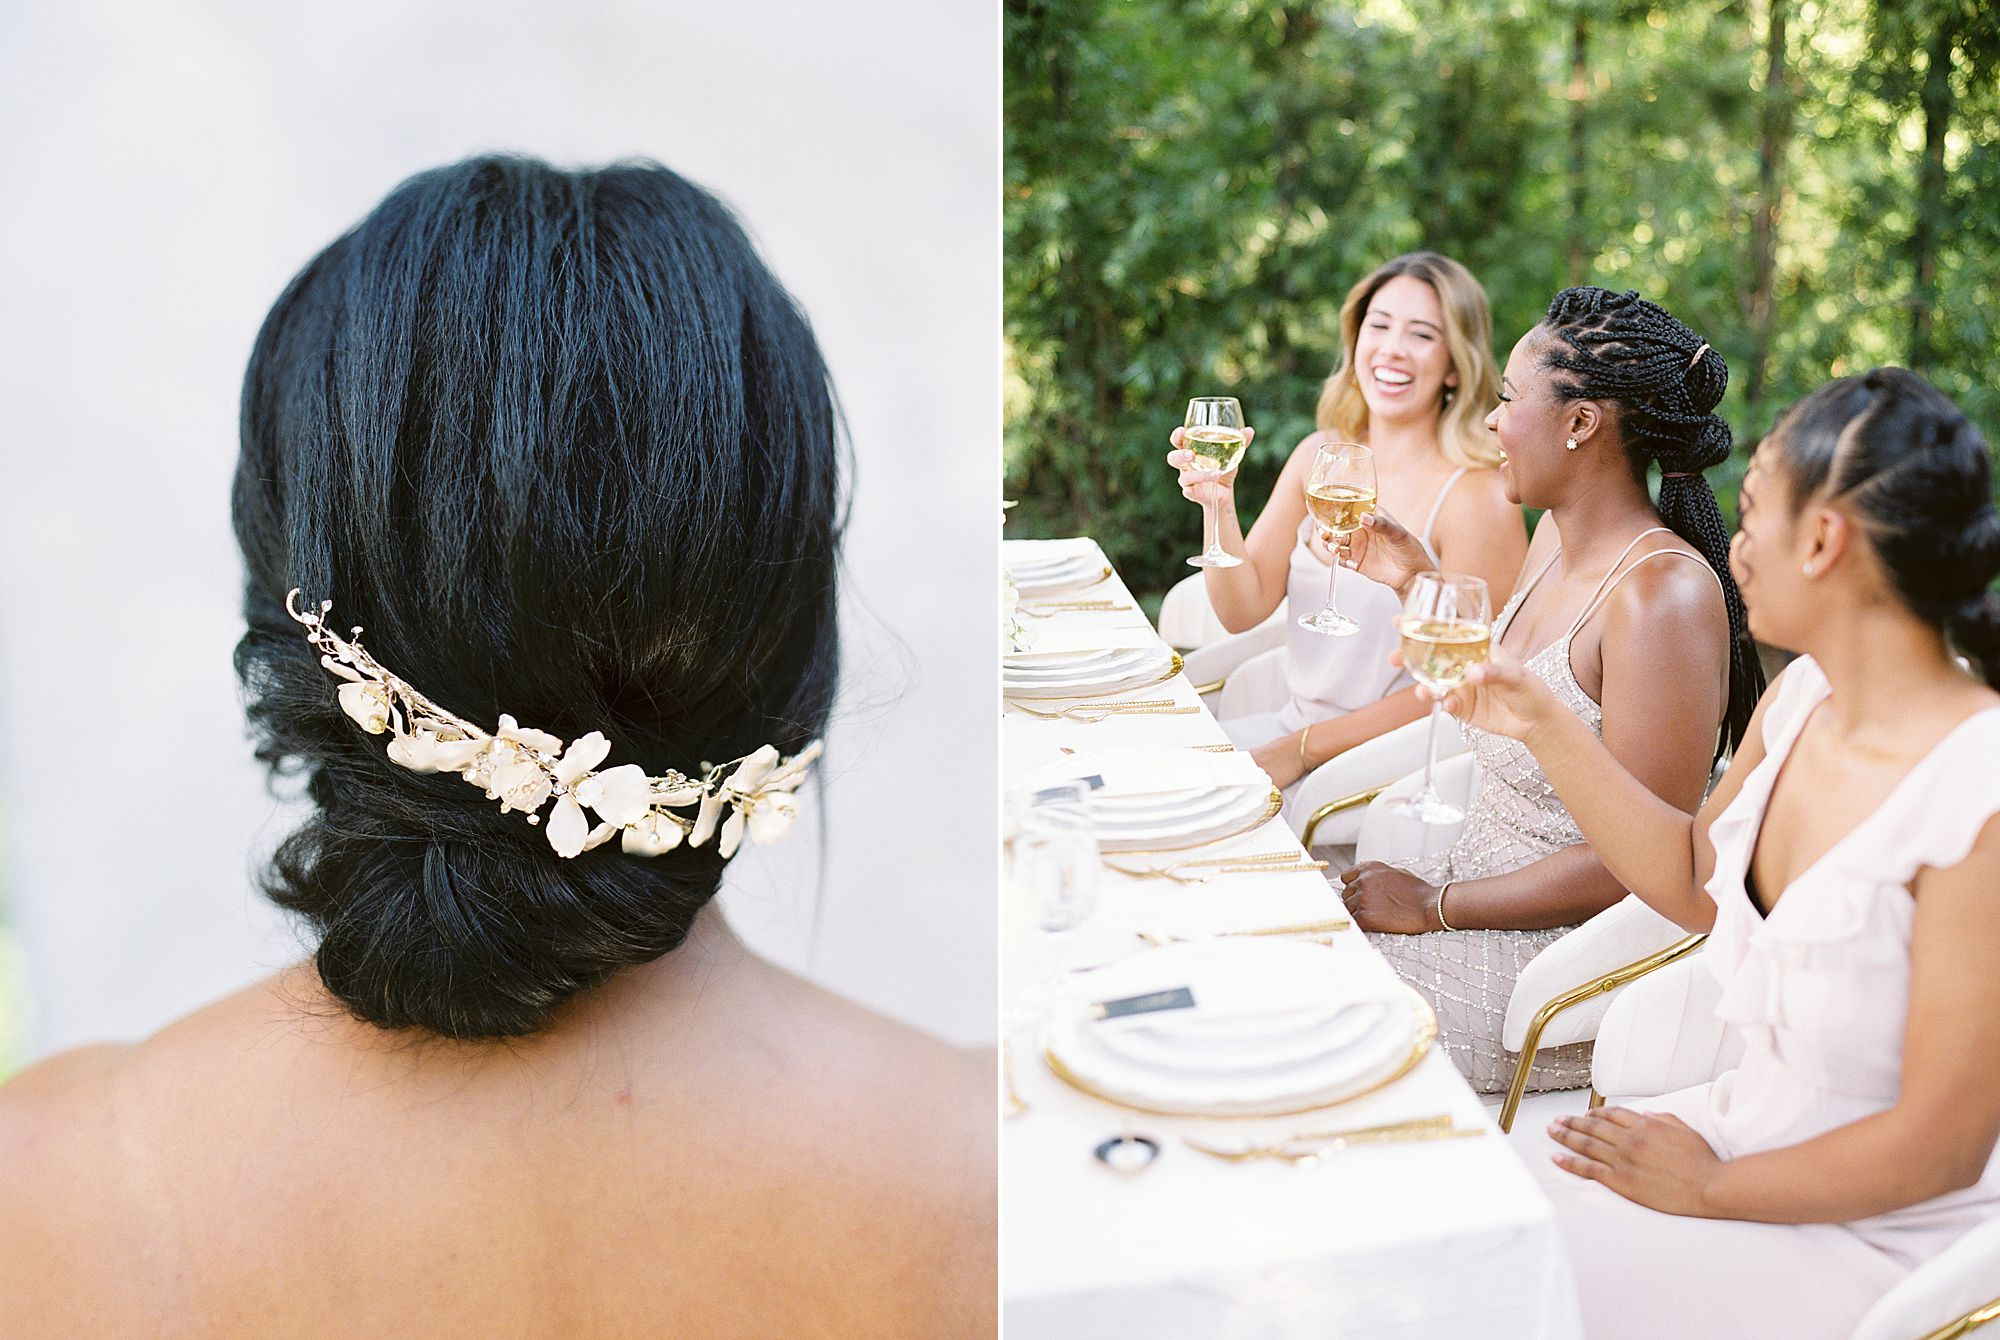 Park Winters Micro-Wedding Inspiration on Style Me Pretty - Stephanie Teague Events - Ashley Baumgartner - Park Winters Wedding - Black Tie Wedding - Micro-Wedding Sacramento Photographer_0013.jpg